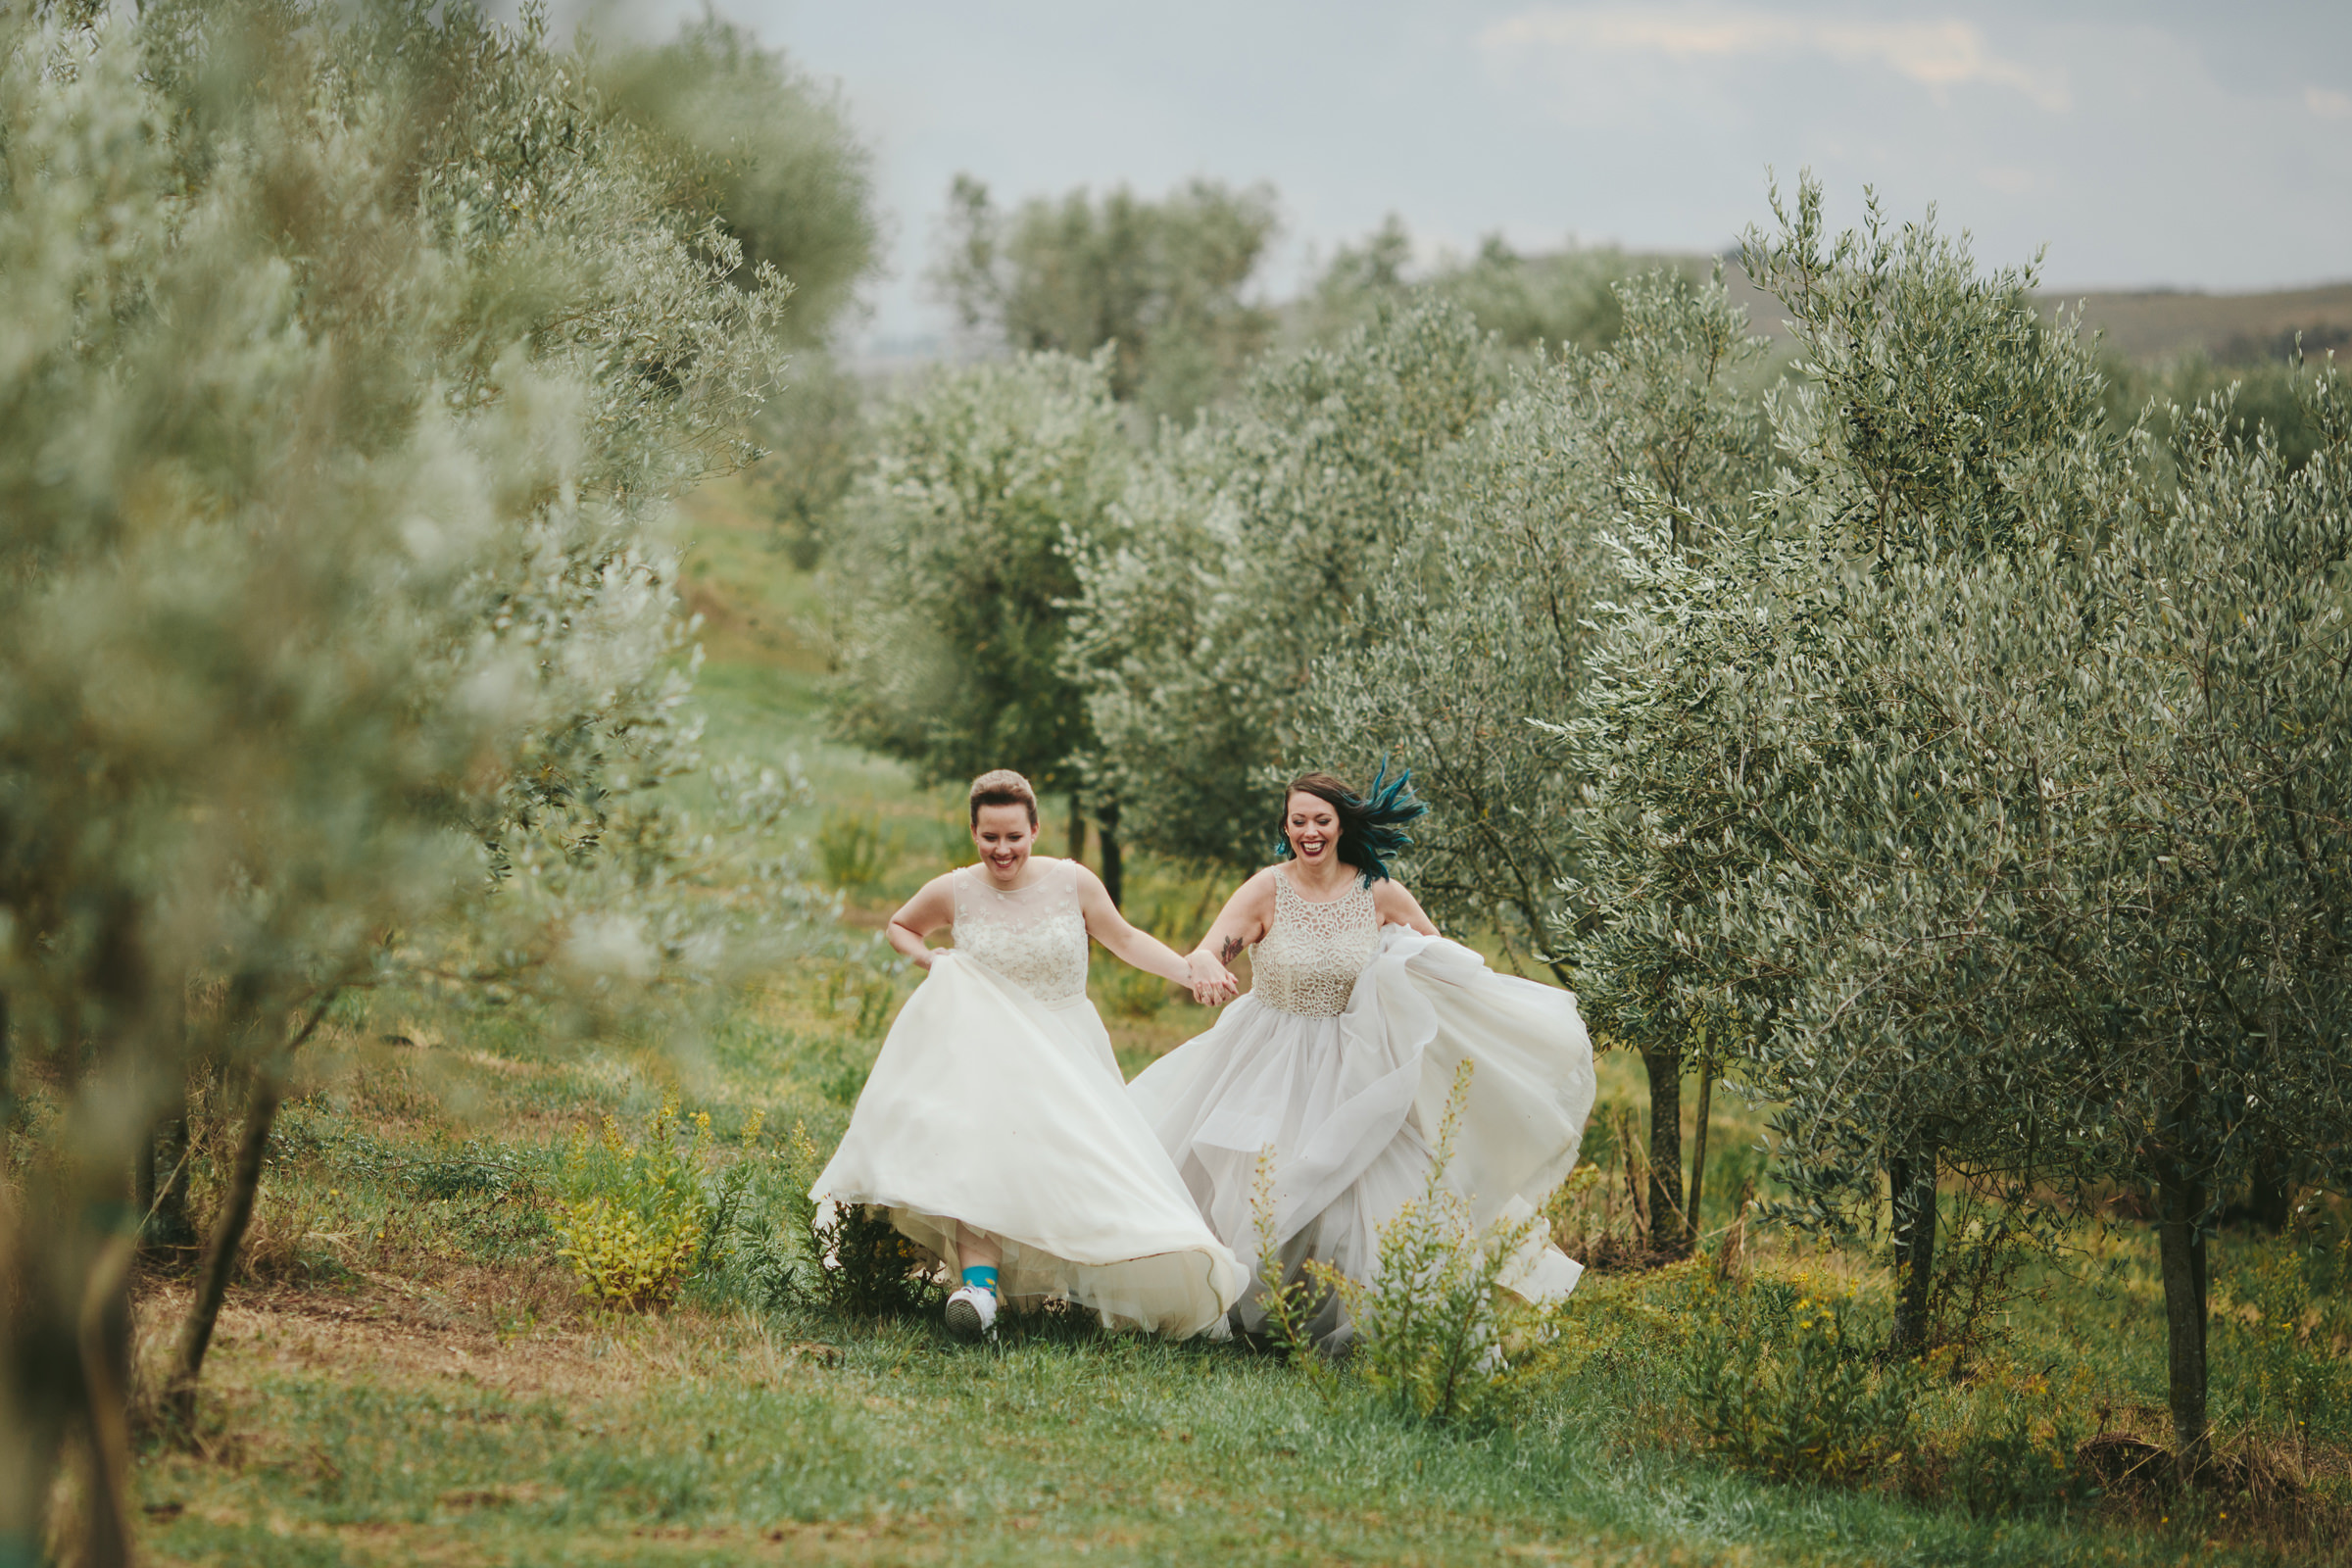 Brides frolic in olive grove - photo by Melia Lucida